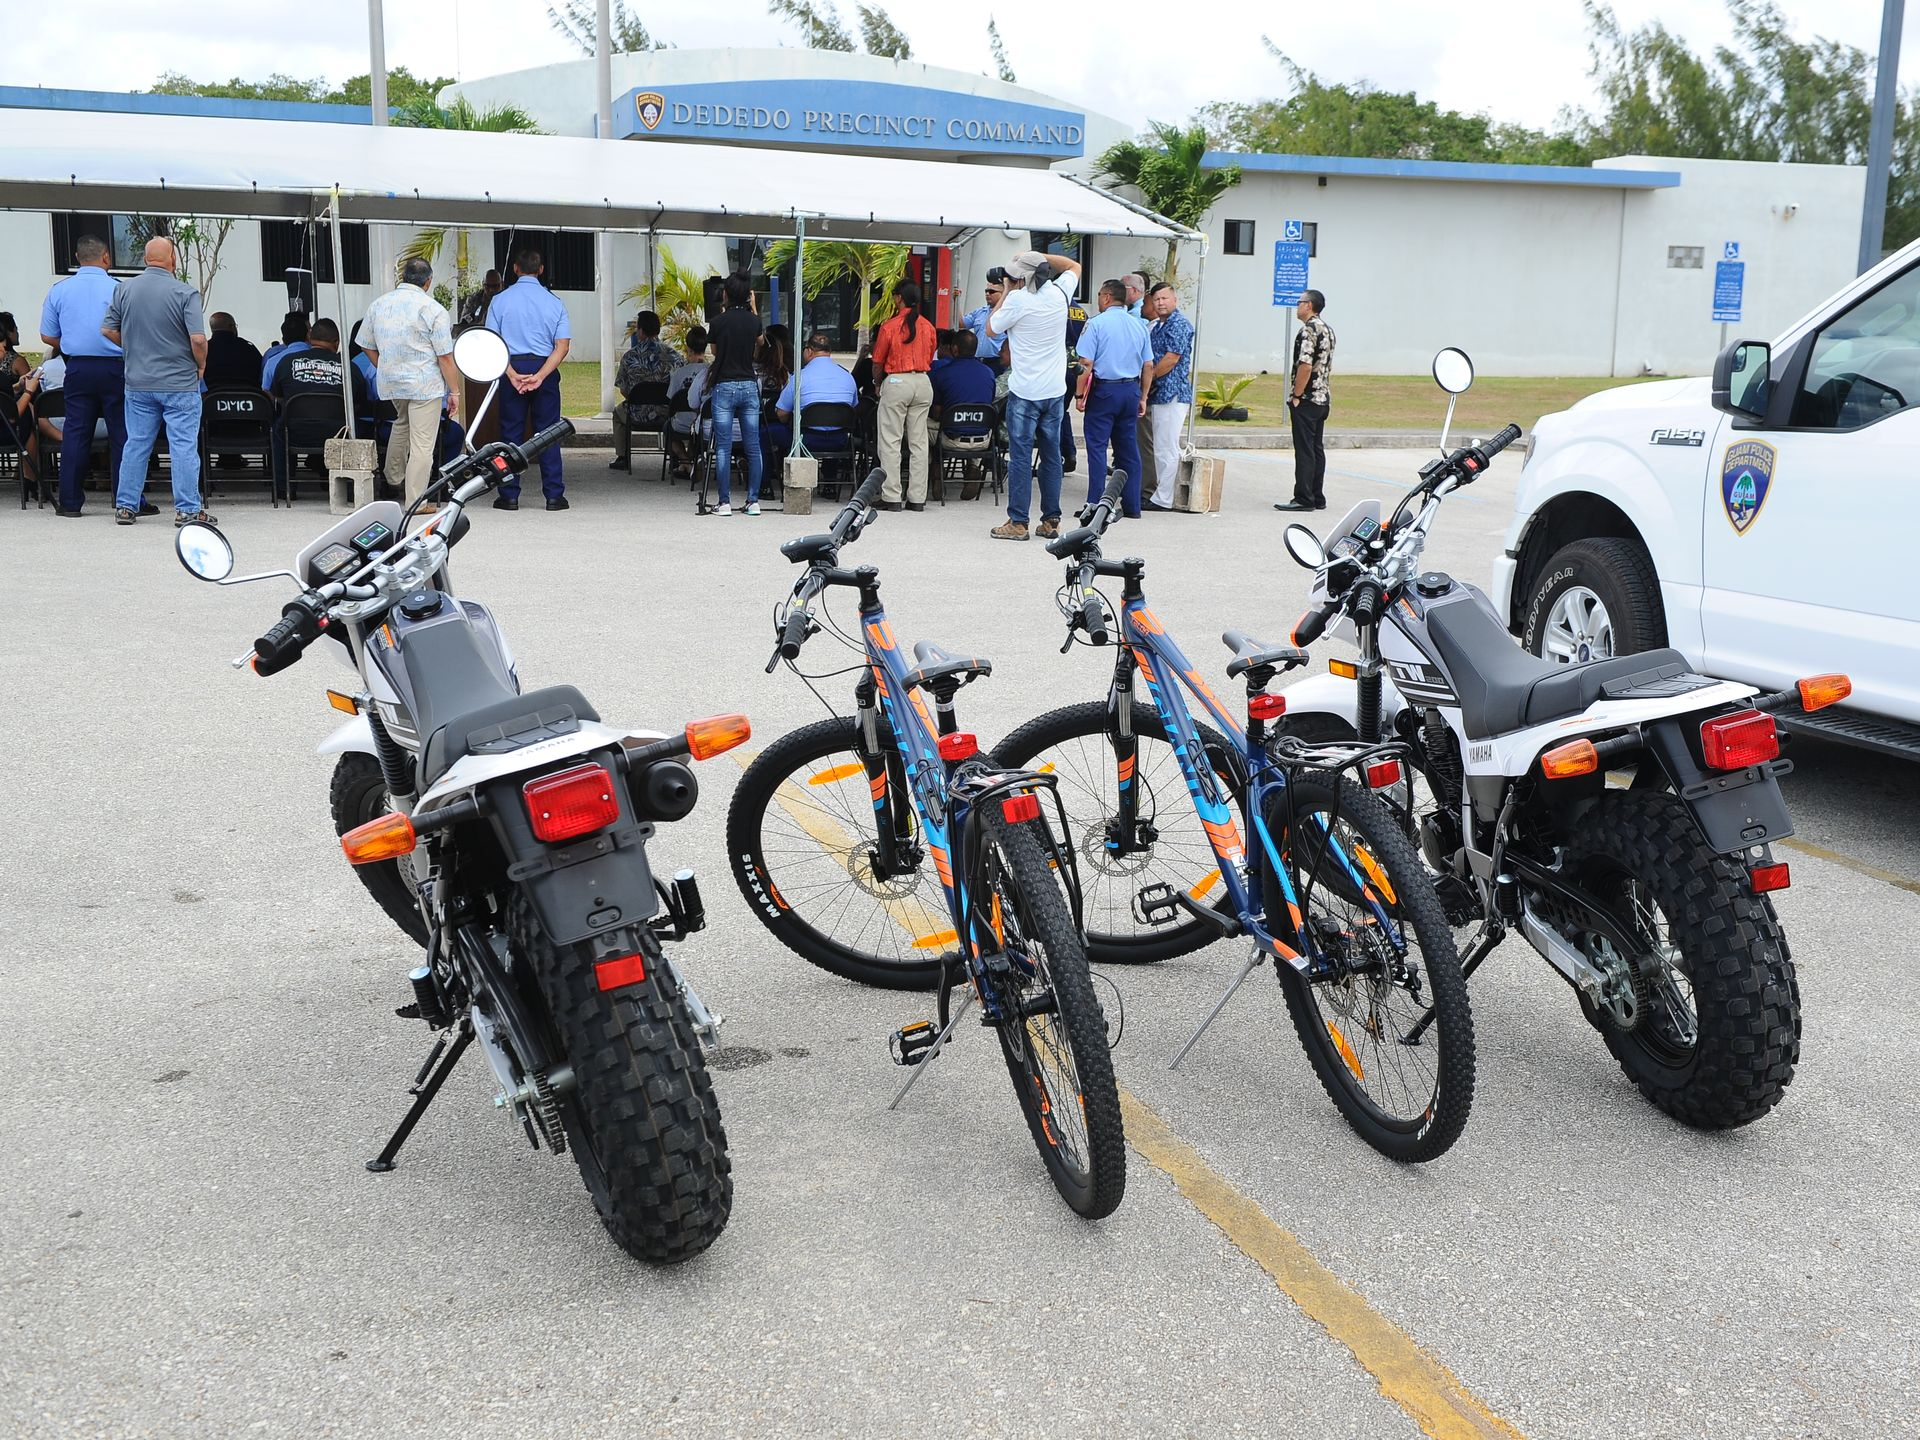 Bike donations support GPD's village patrol, visibility in community